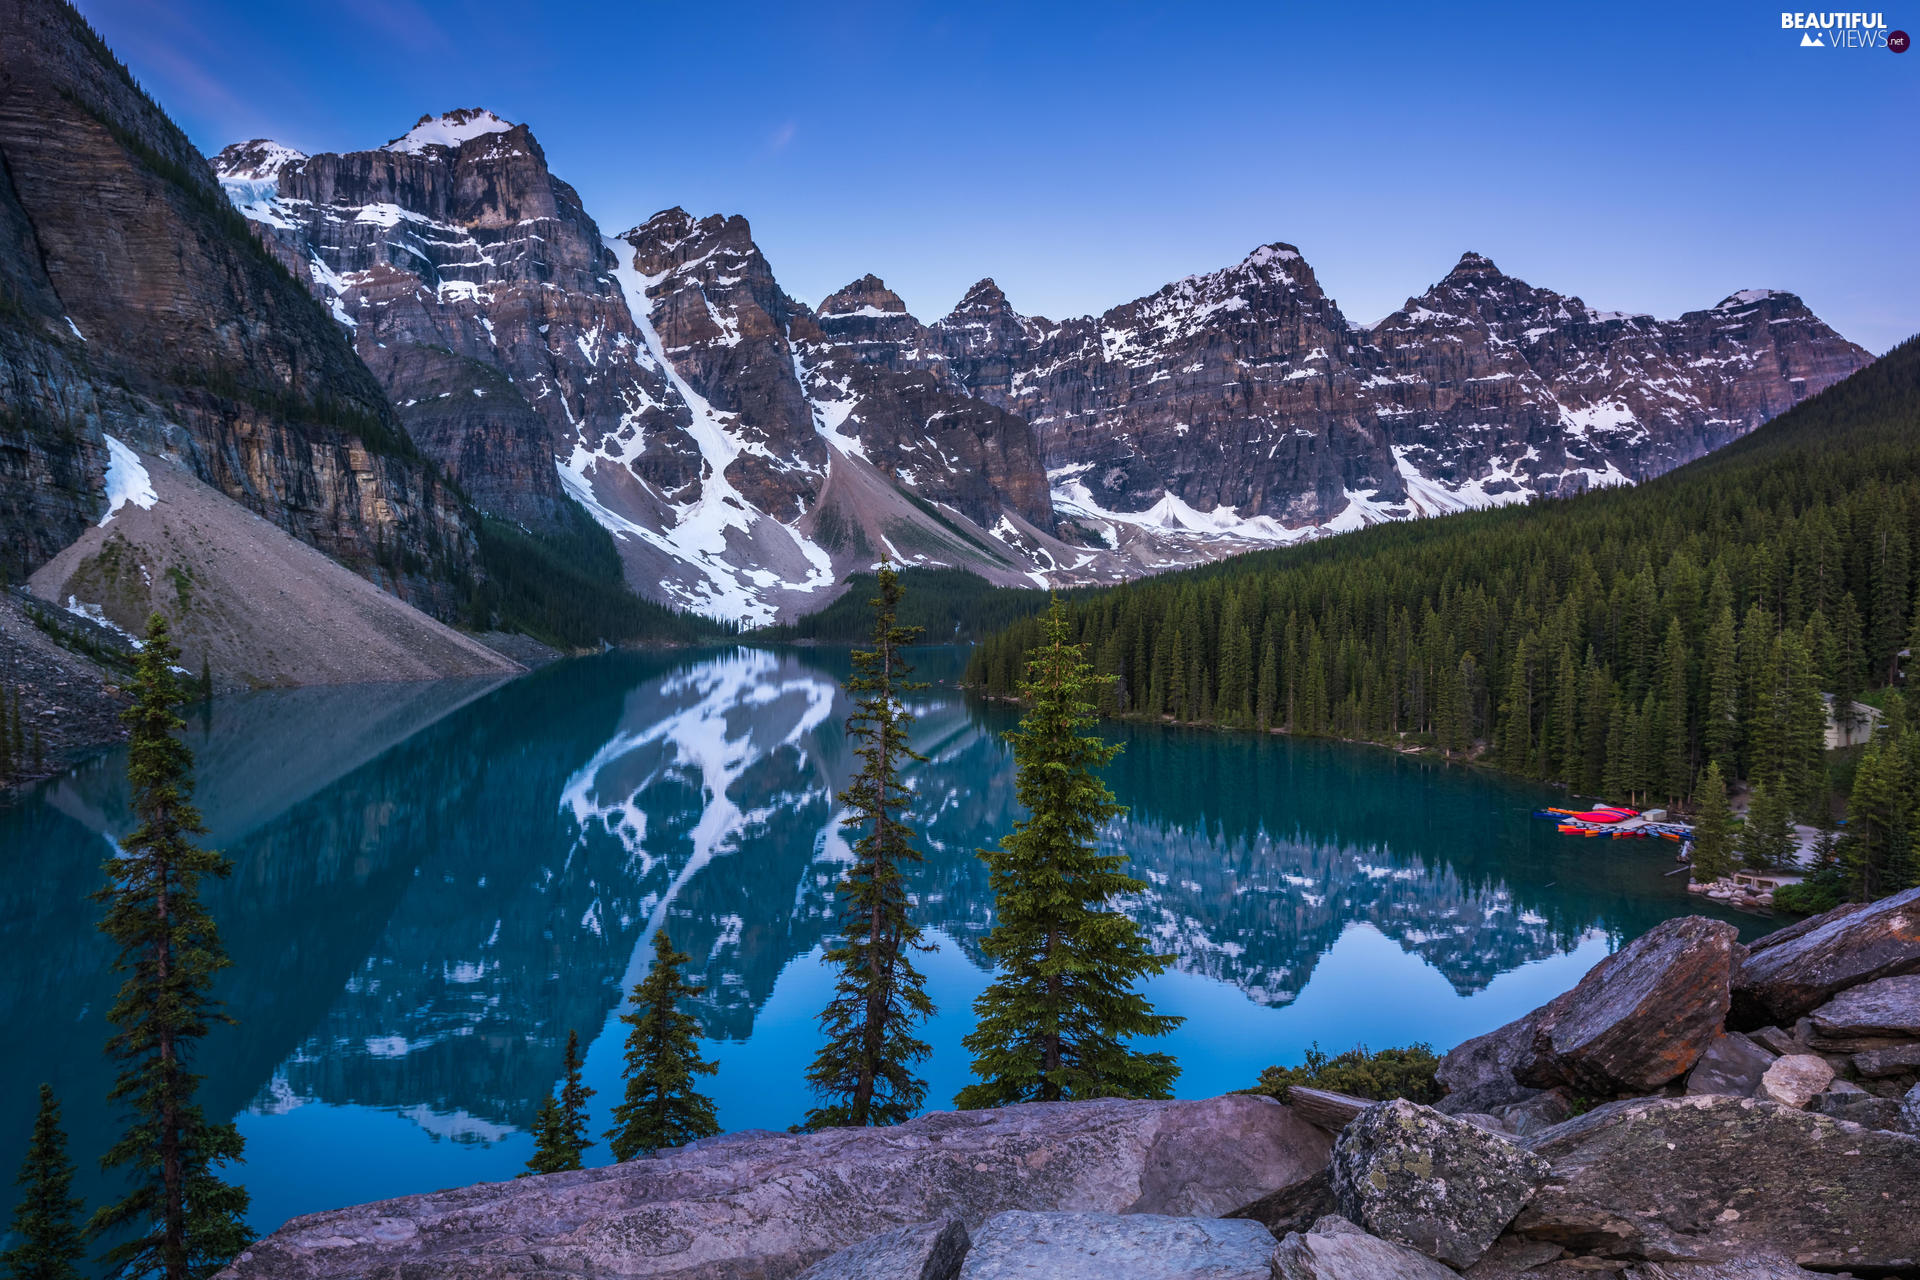 viewes, Province of Alberta, Moraine Lake, clouds, Mountains, Banff National Park, lake, Canada, Stones, trees